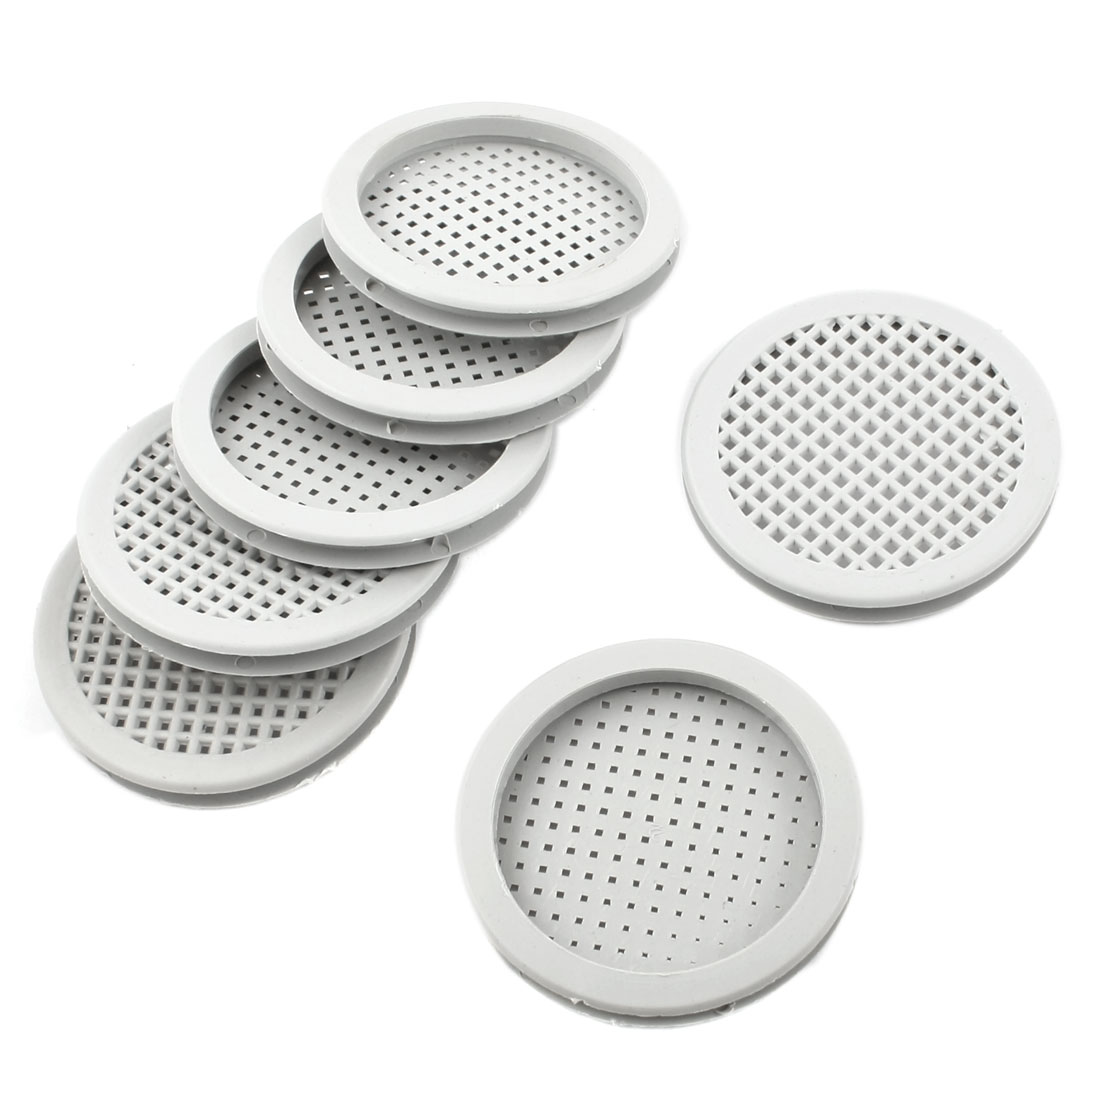 "7 Pcs Kitchen Bathroom Plastic Round 2.2"" Diameter Air Vent Louver Gray"